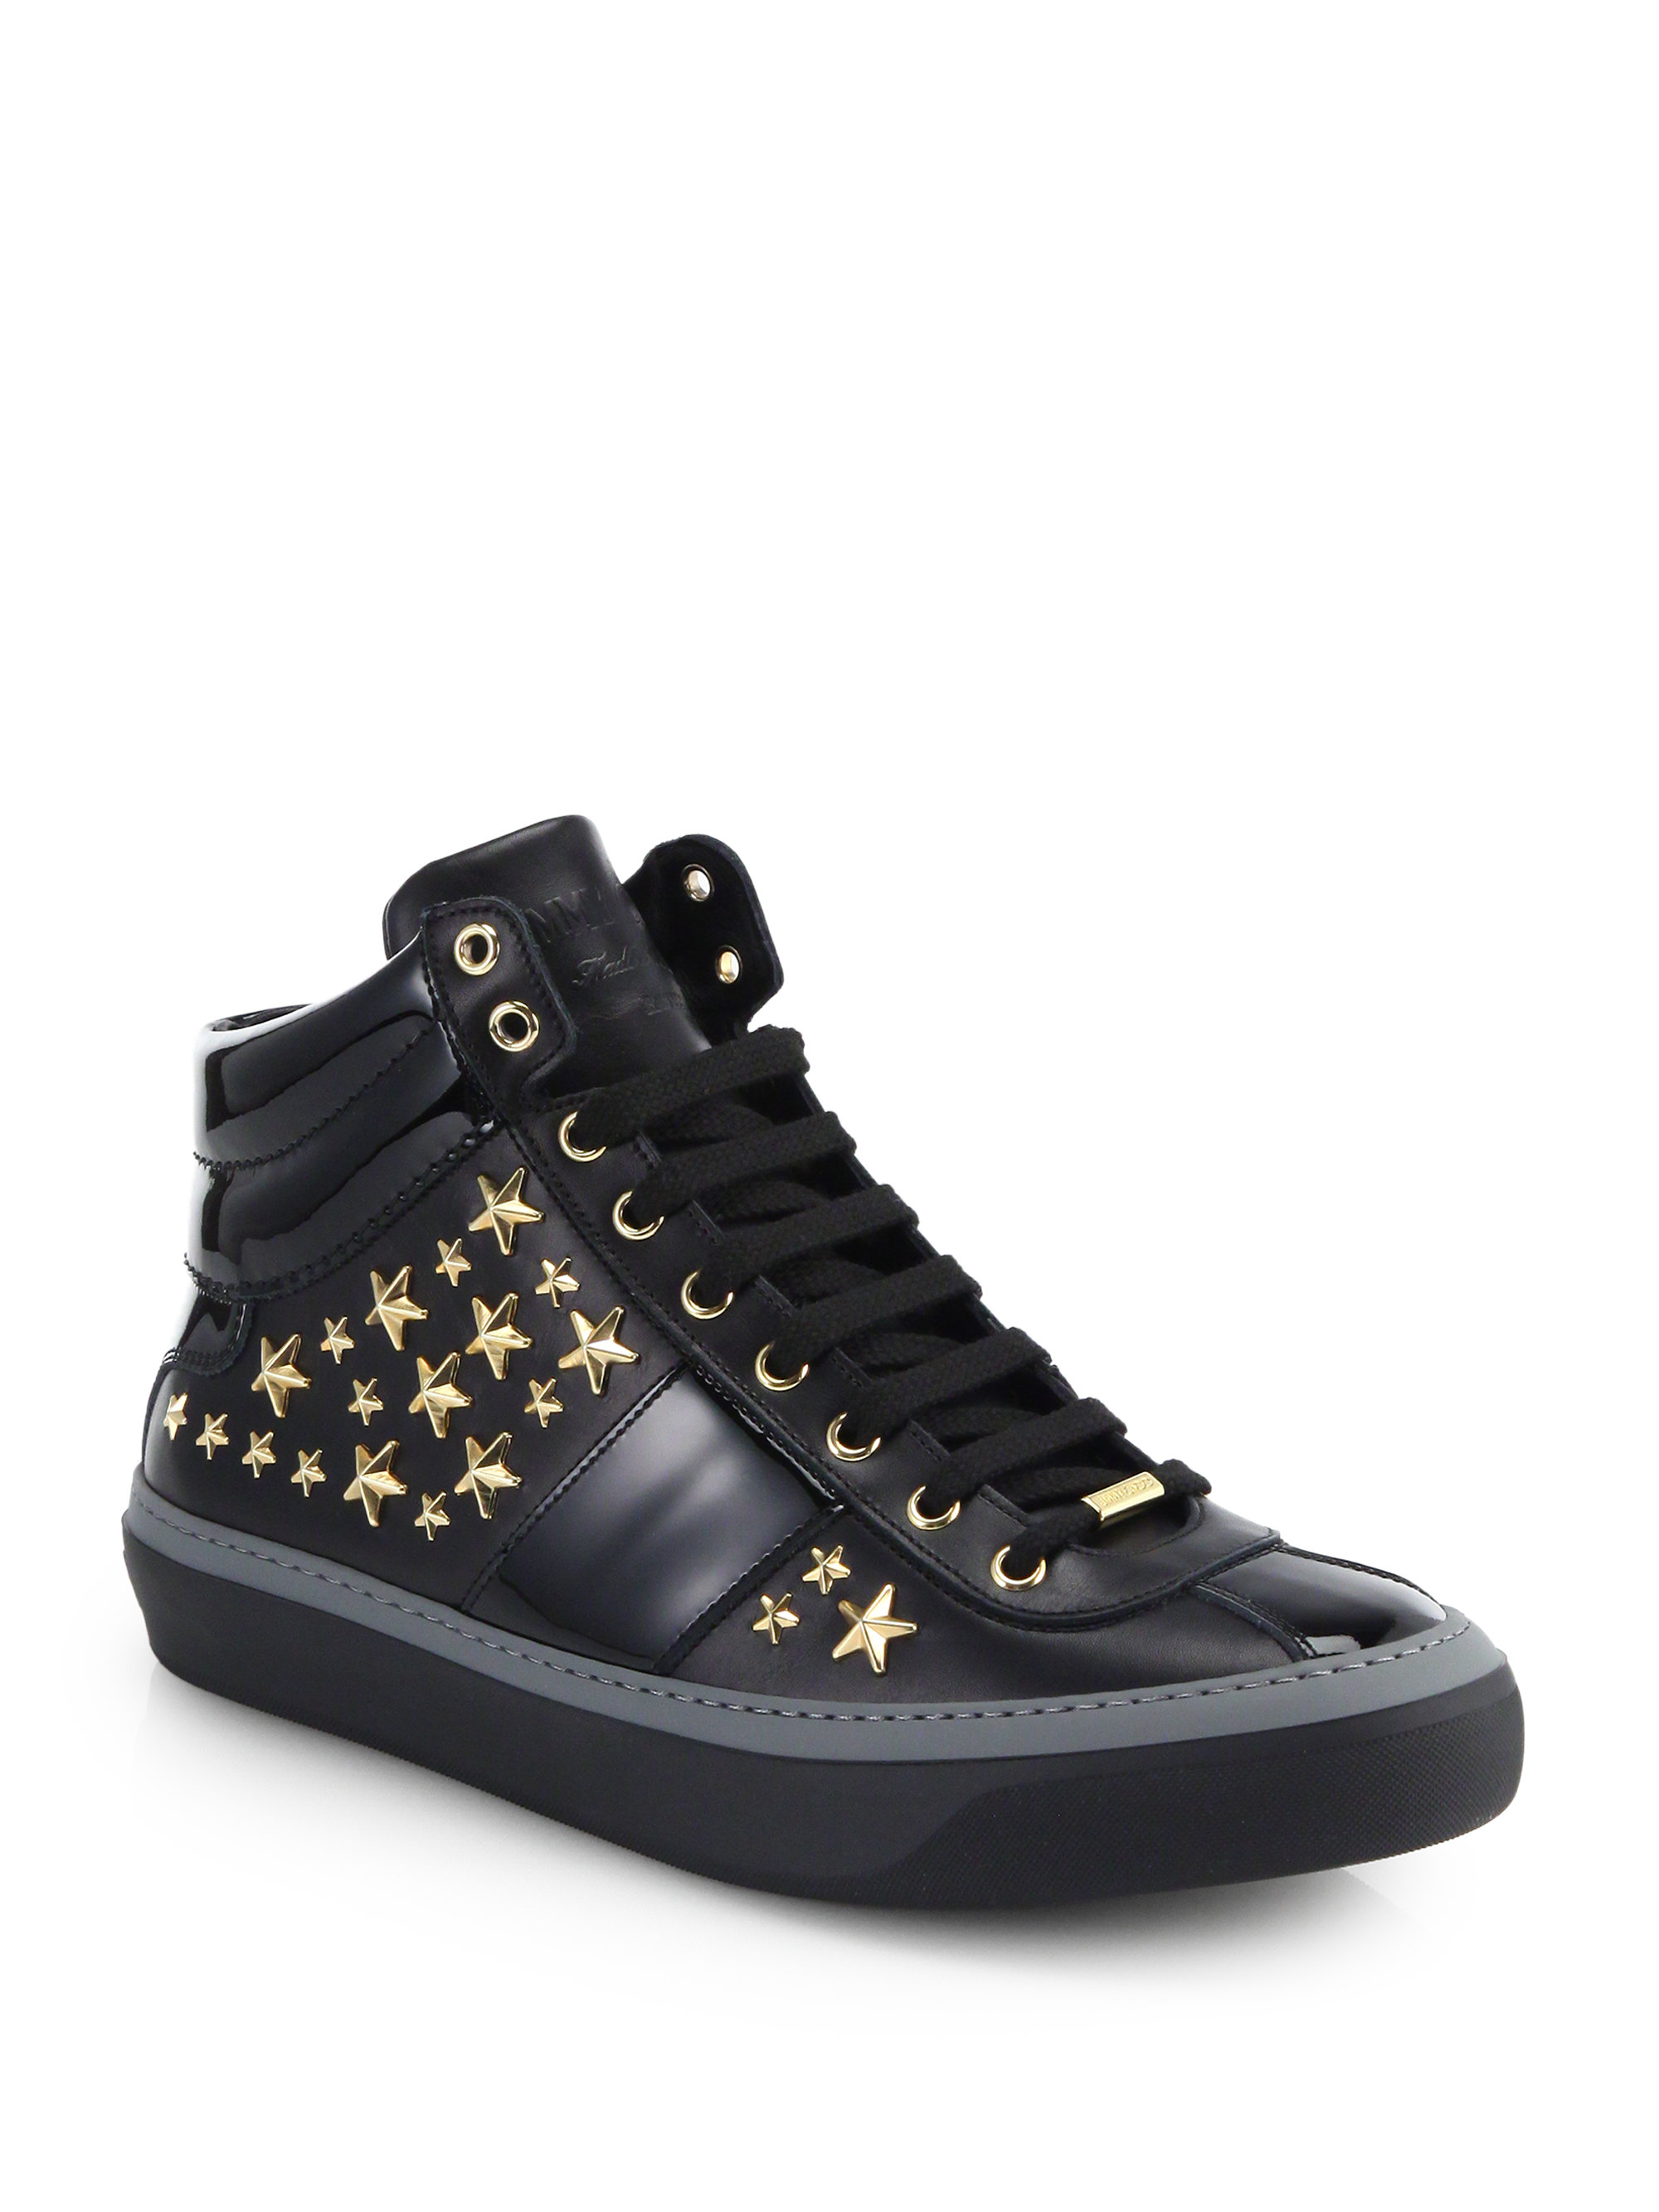 Lyst Jimmy Choo Black Patent And Matte Star Studded